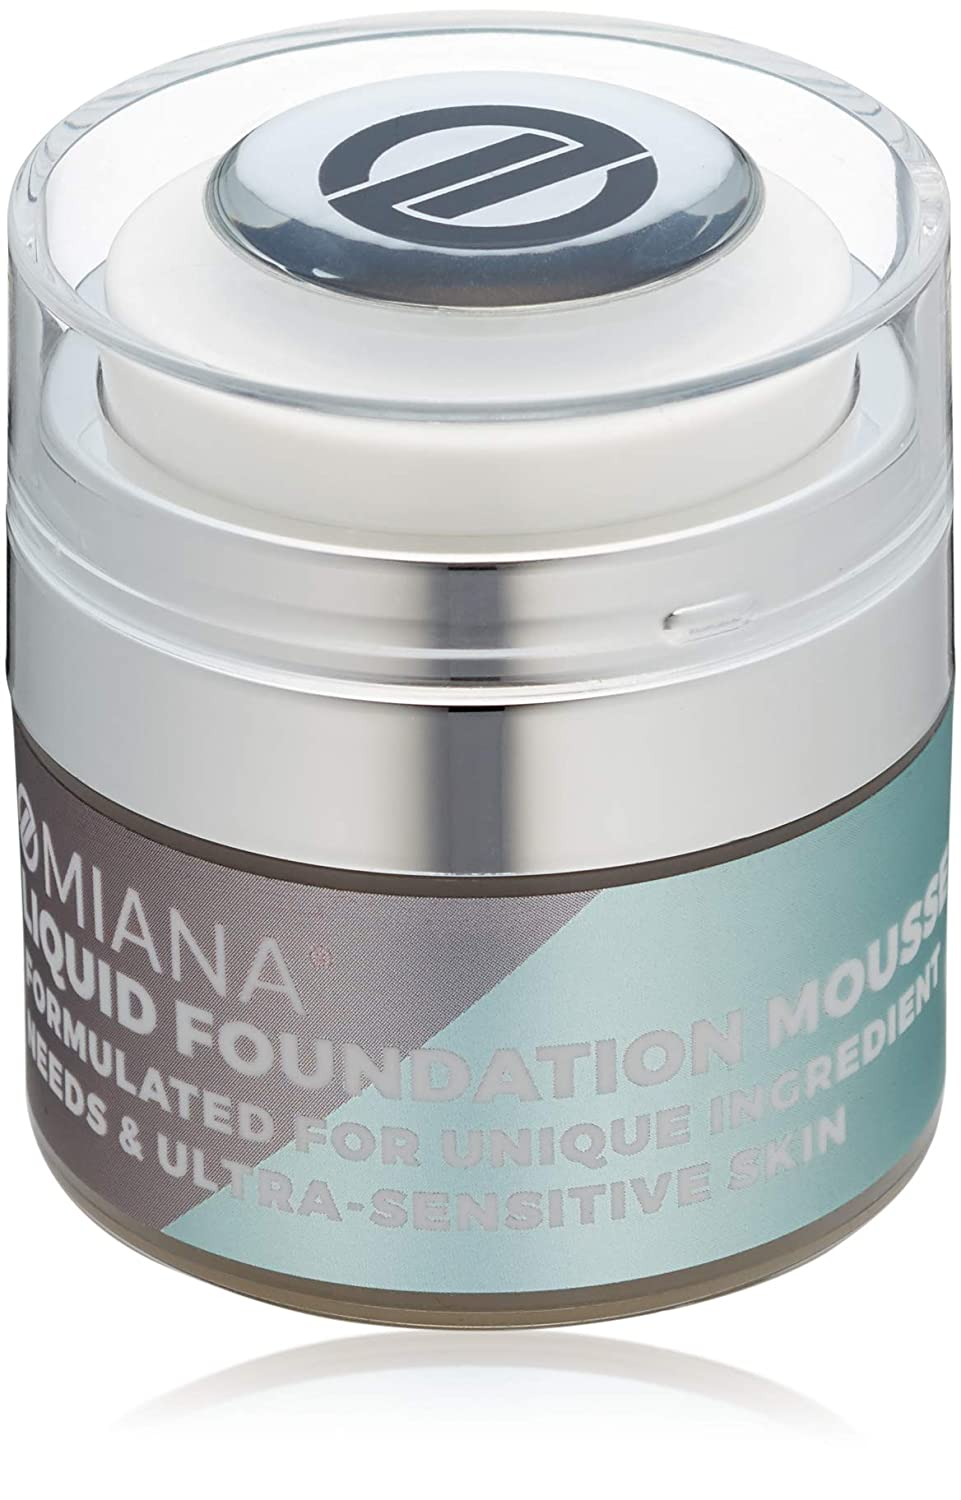 Omiana Liquid Foundation Mousse - Natural Foundation, Concealer, and Contour Makeup, Mica-Free, Made in the USA, Light Tan